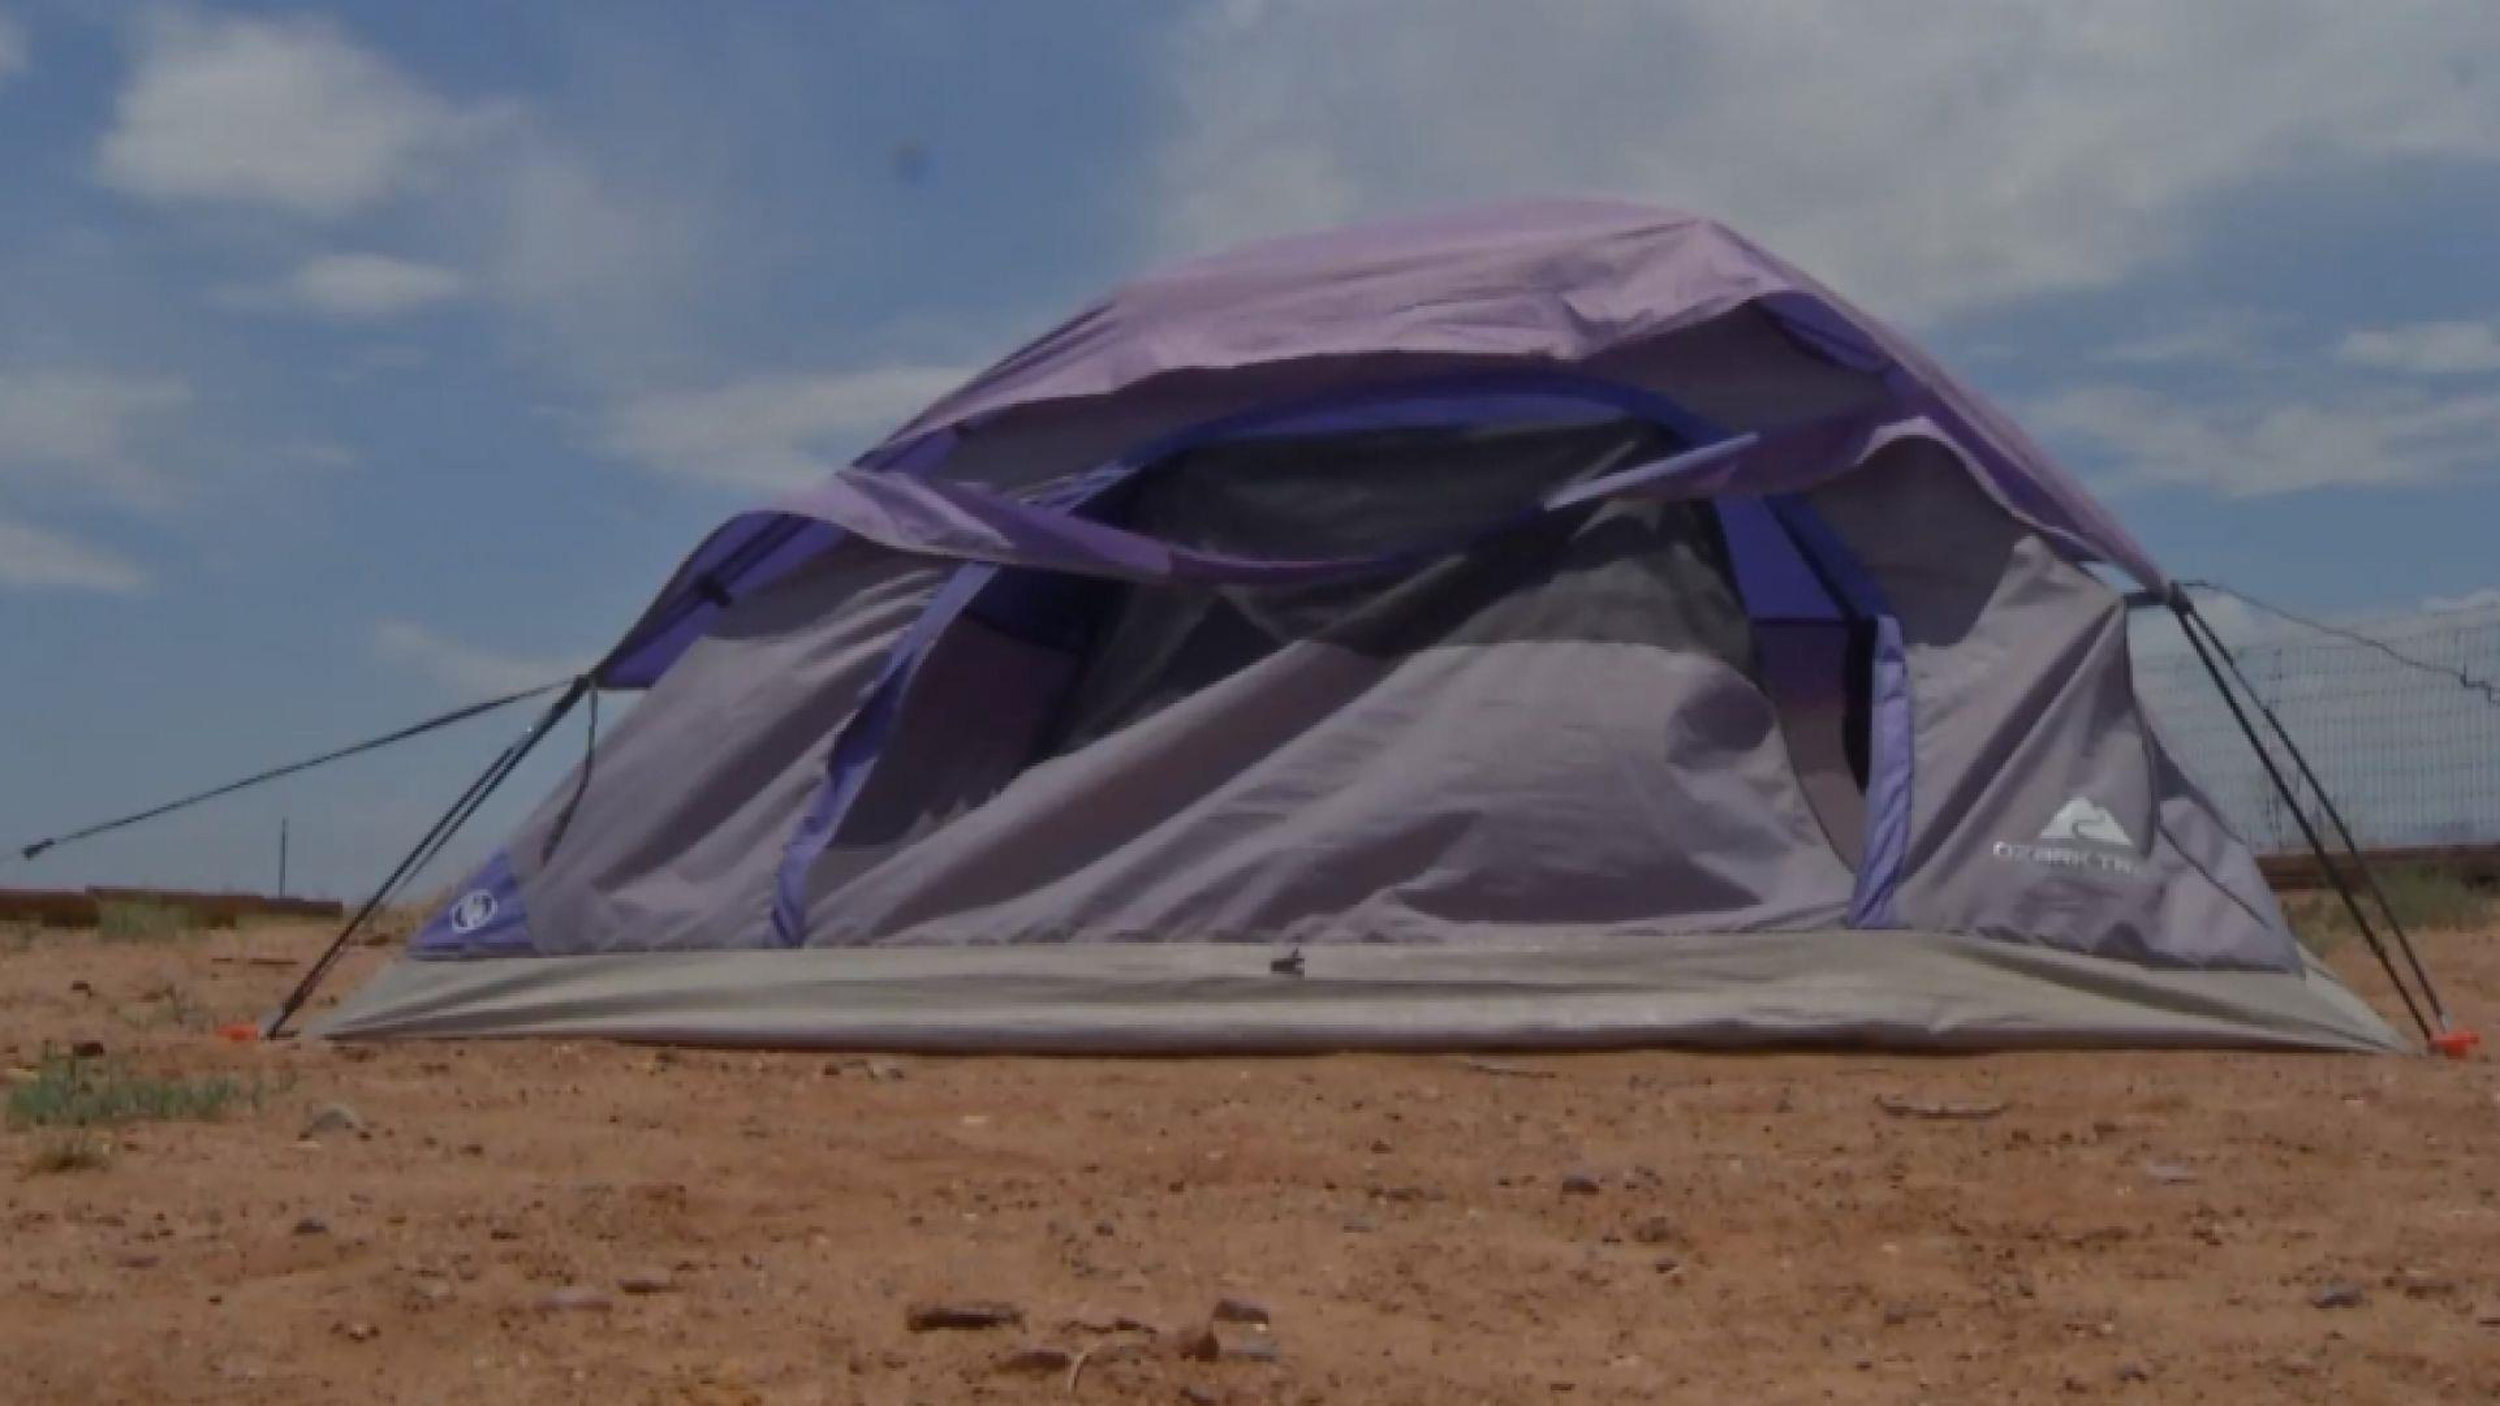 Parents punish teen for theft with backyard tent banishment